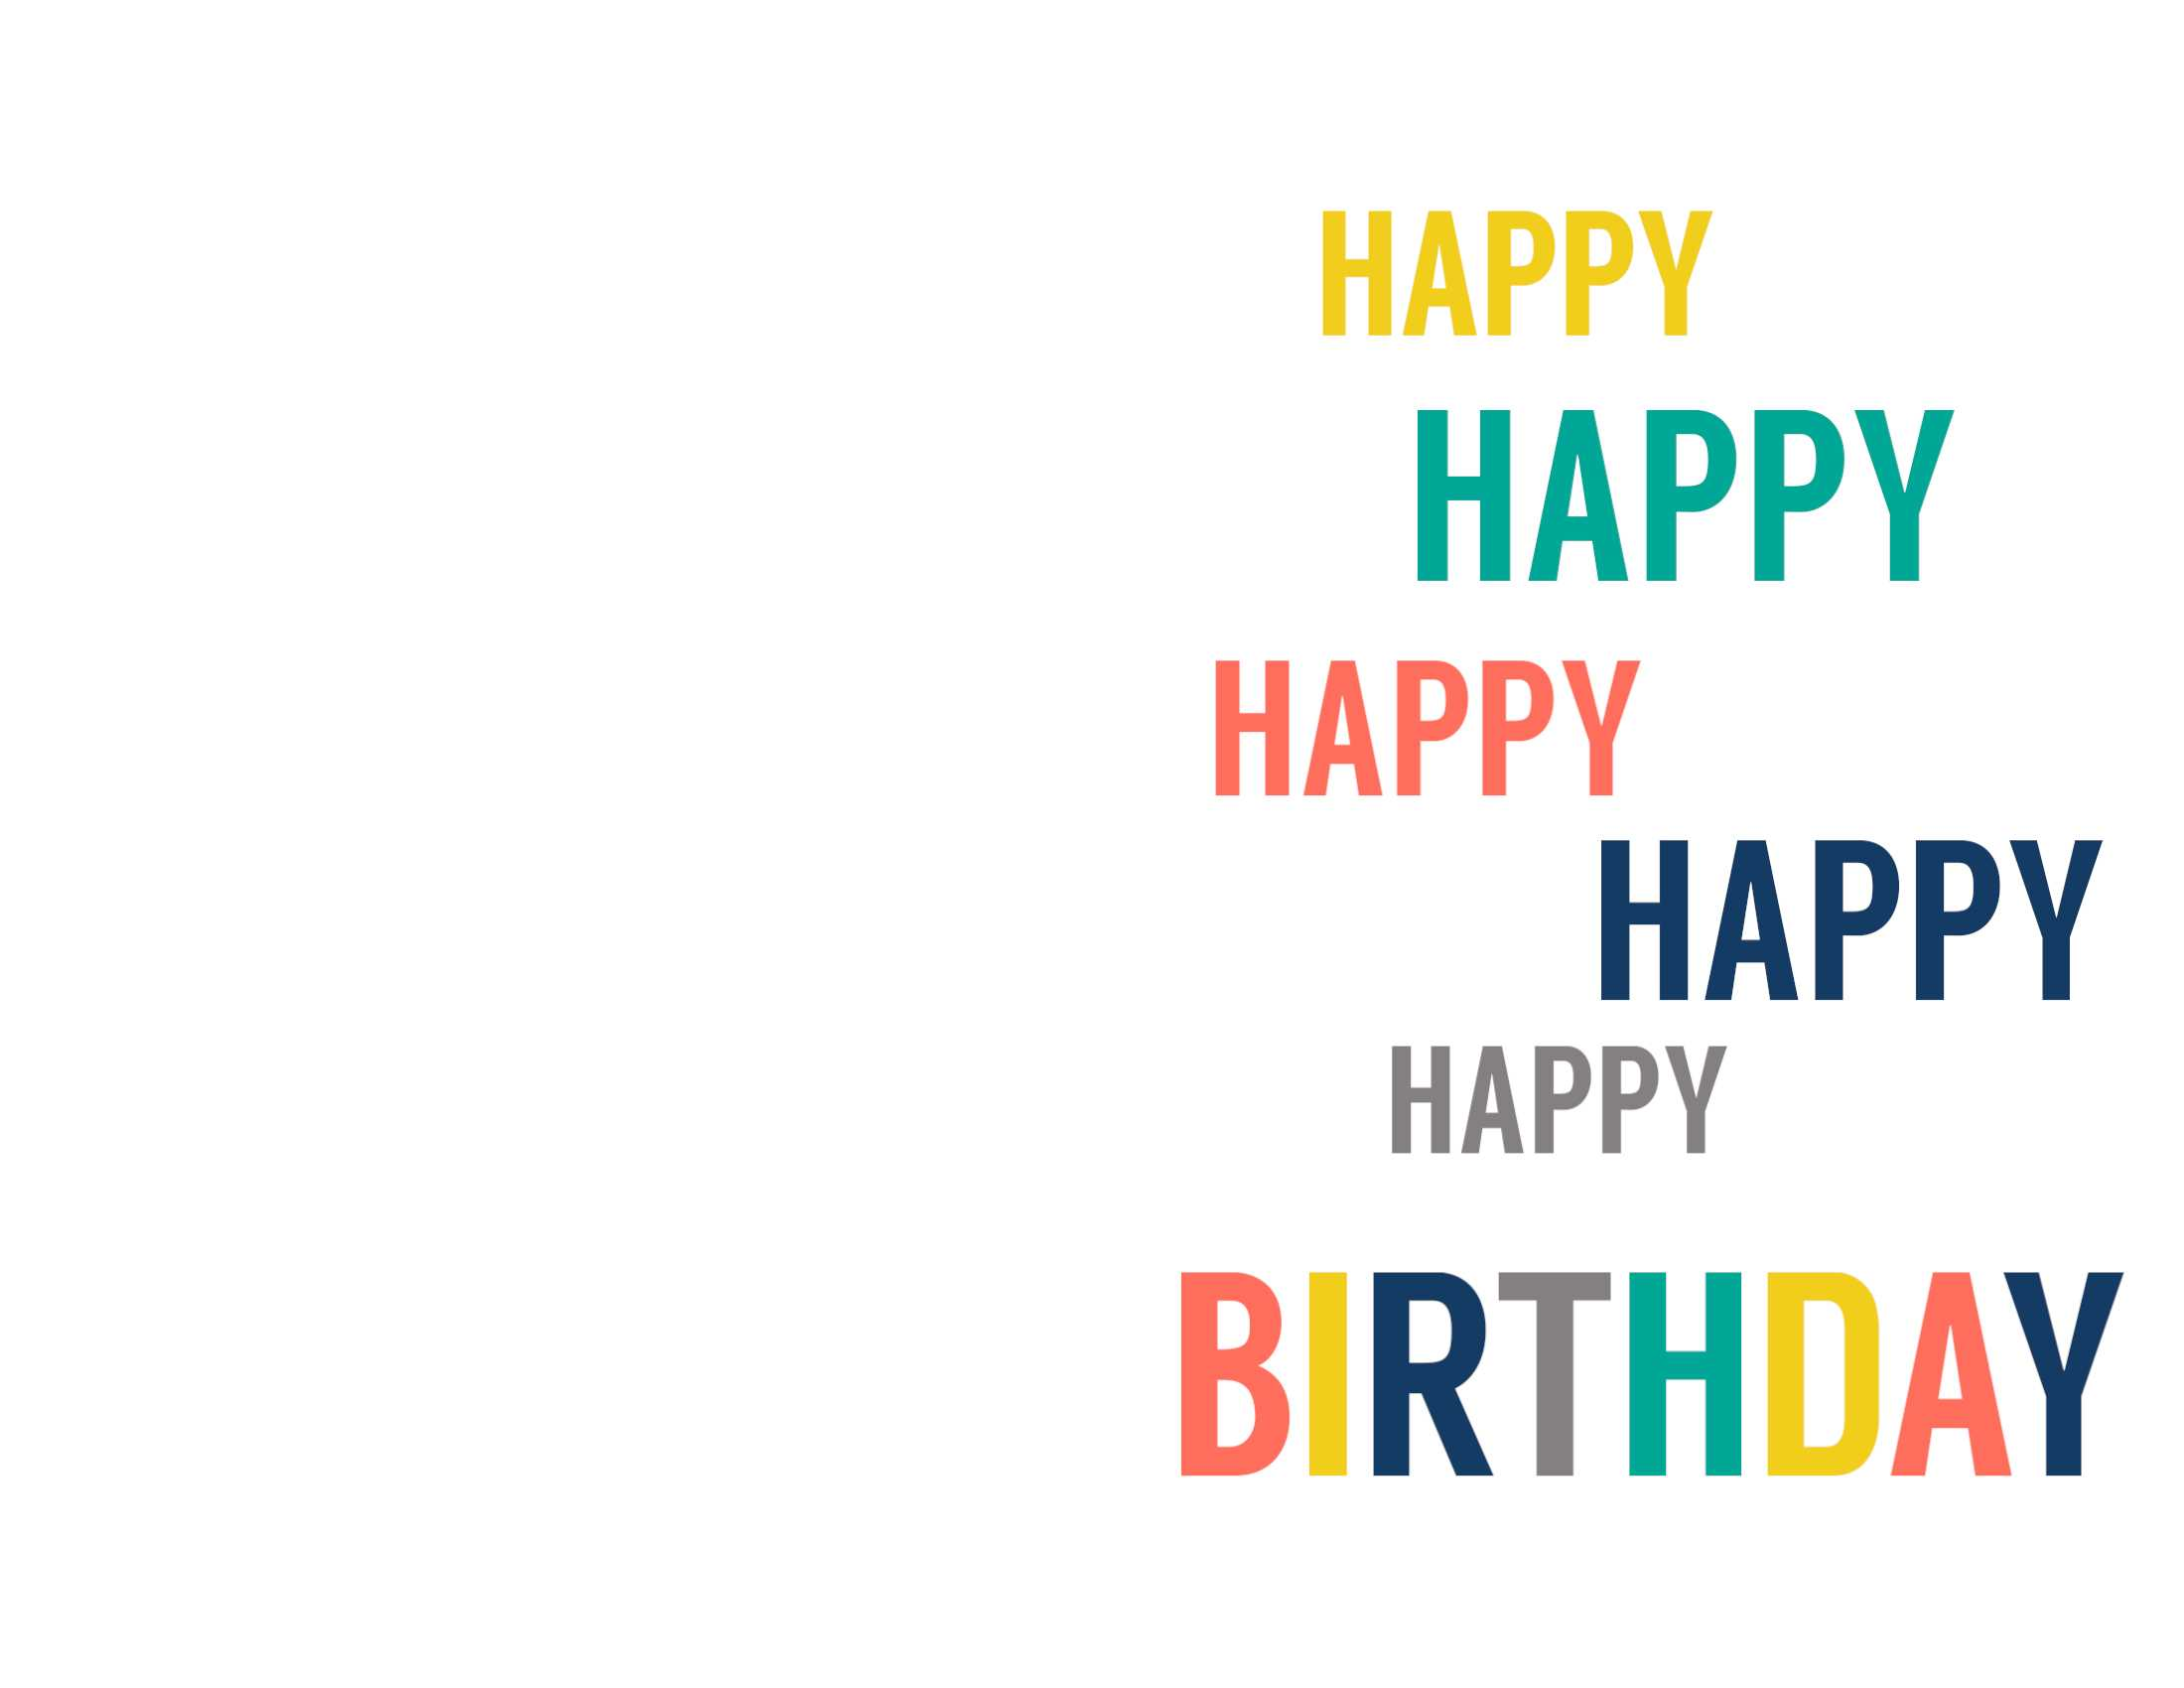 Birthday Cards Templates To Print - Calep.midnightpig.co In Foldable Birthday Card Template